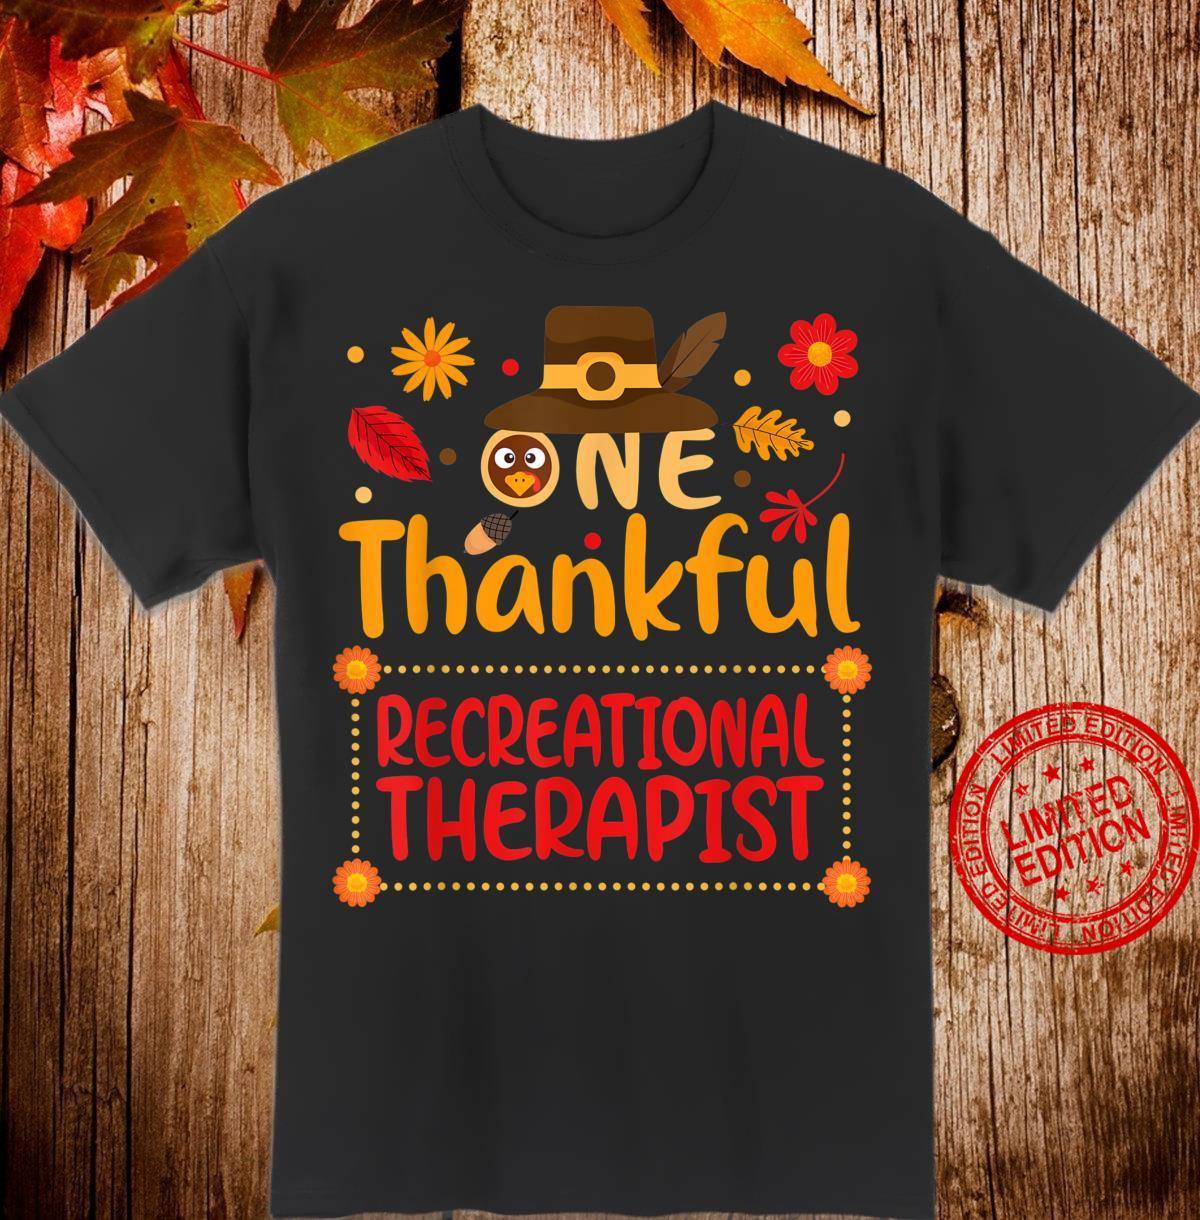 One Thankful Recreational Therapist Thanksgiving Outfit Shirt